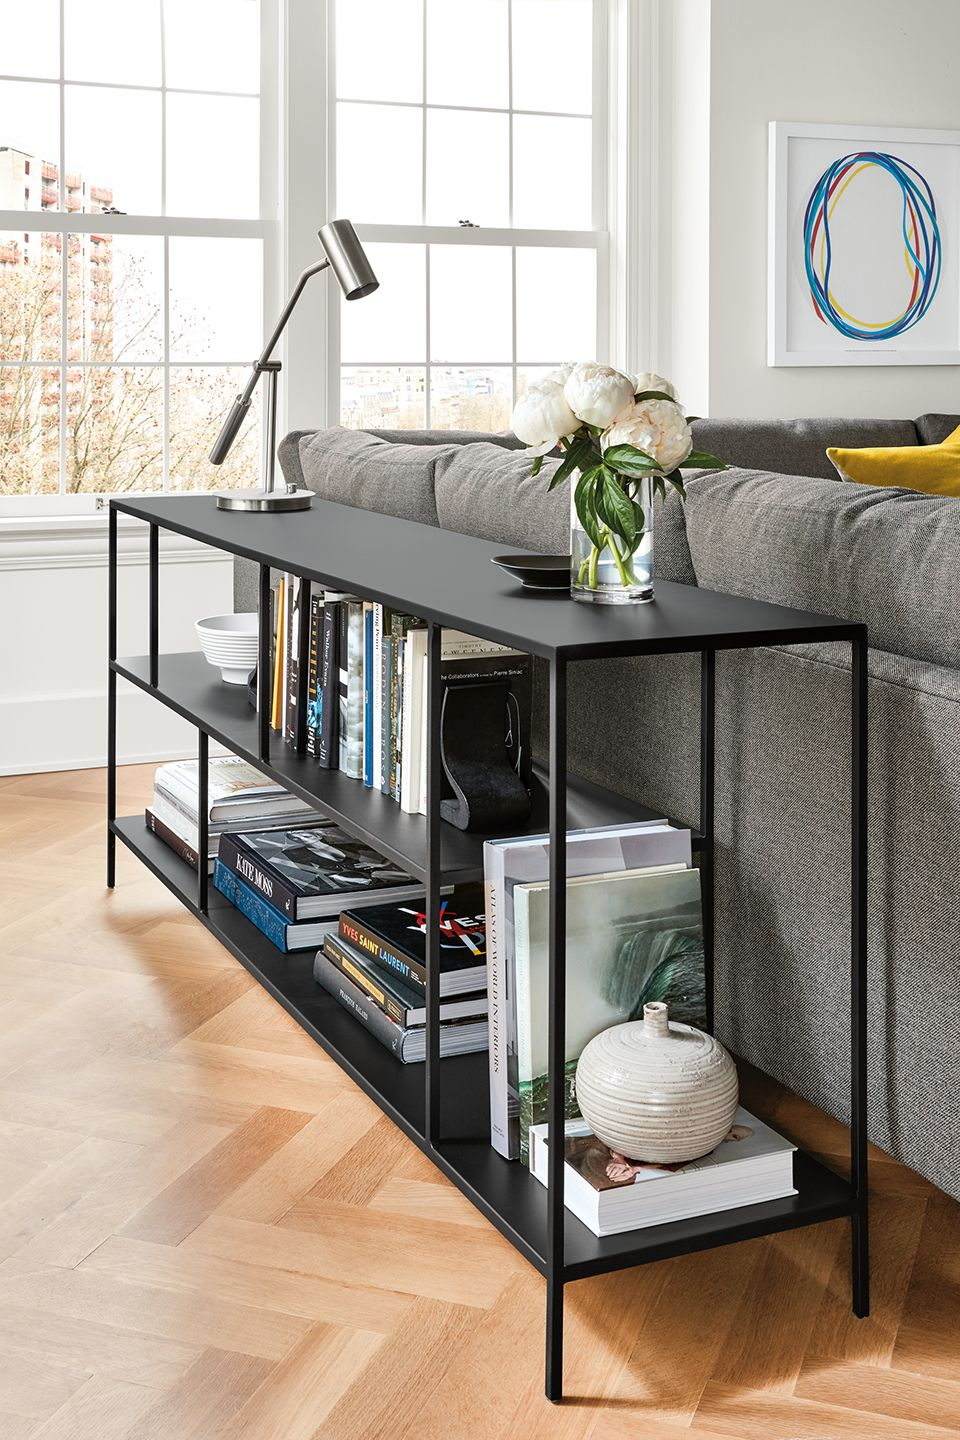 Side detail of Foshay console bookcase